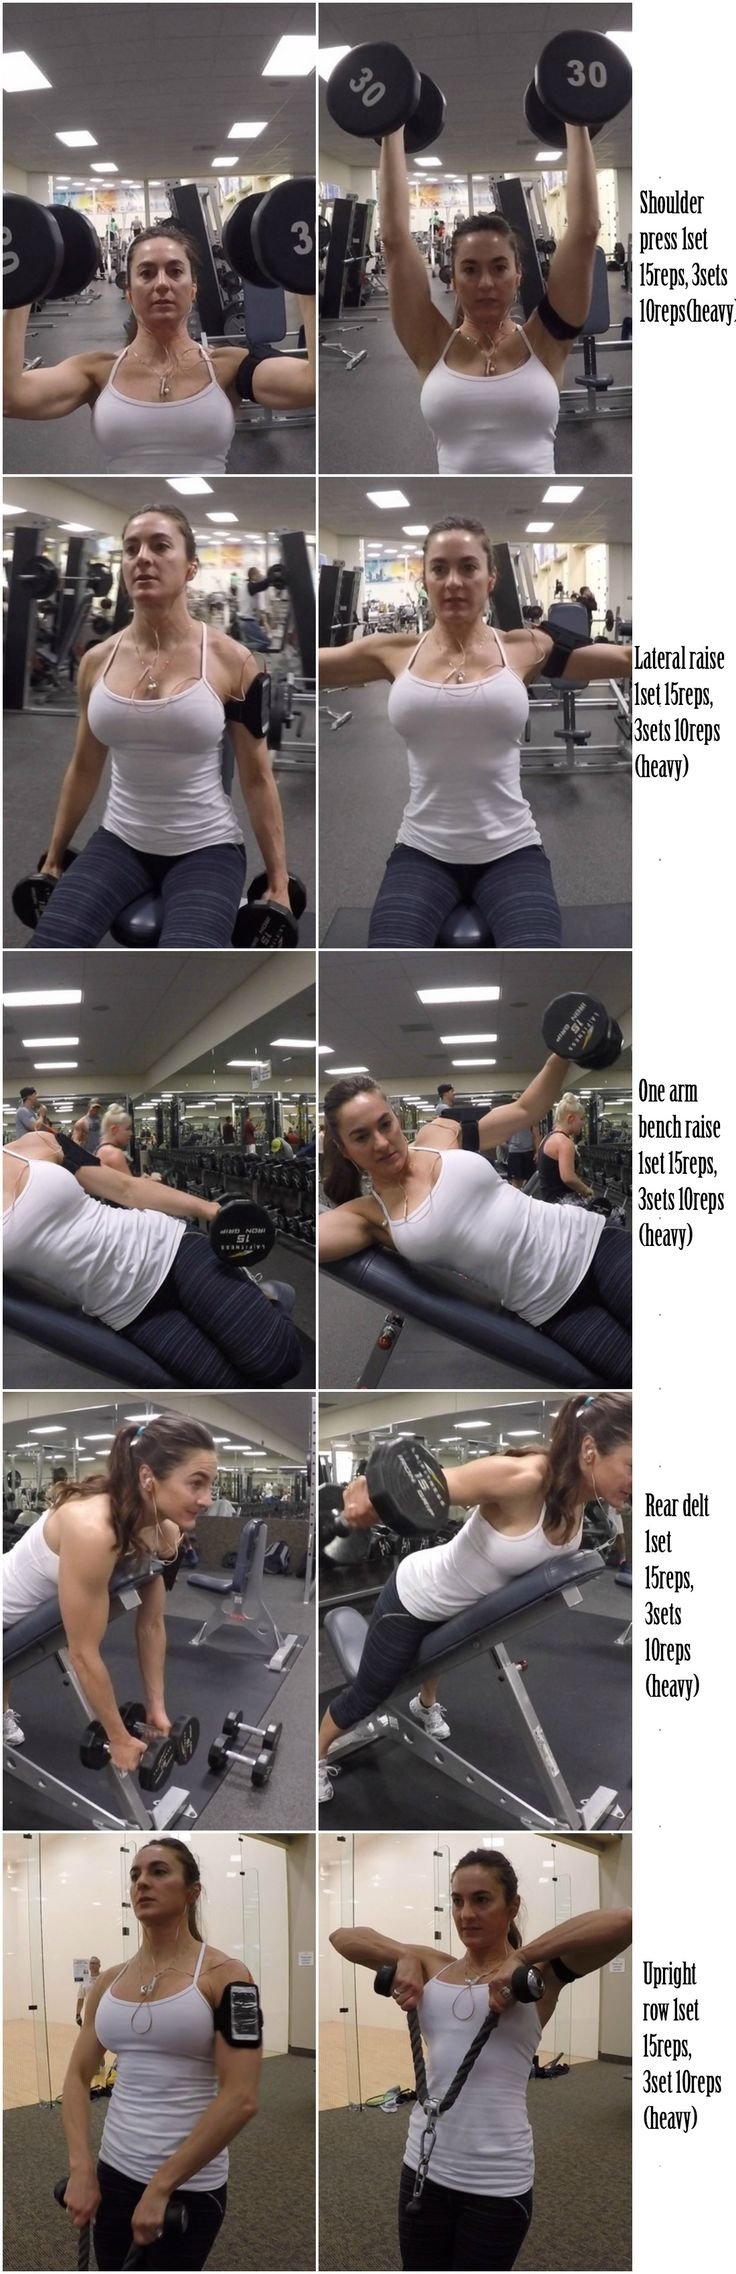 How to slim down within 2 months picture 2